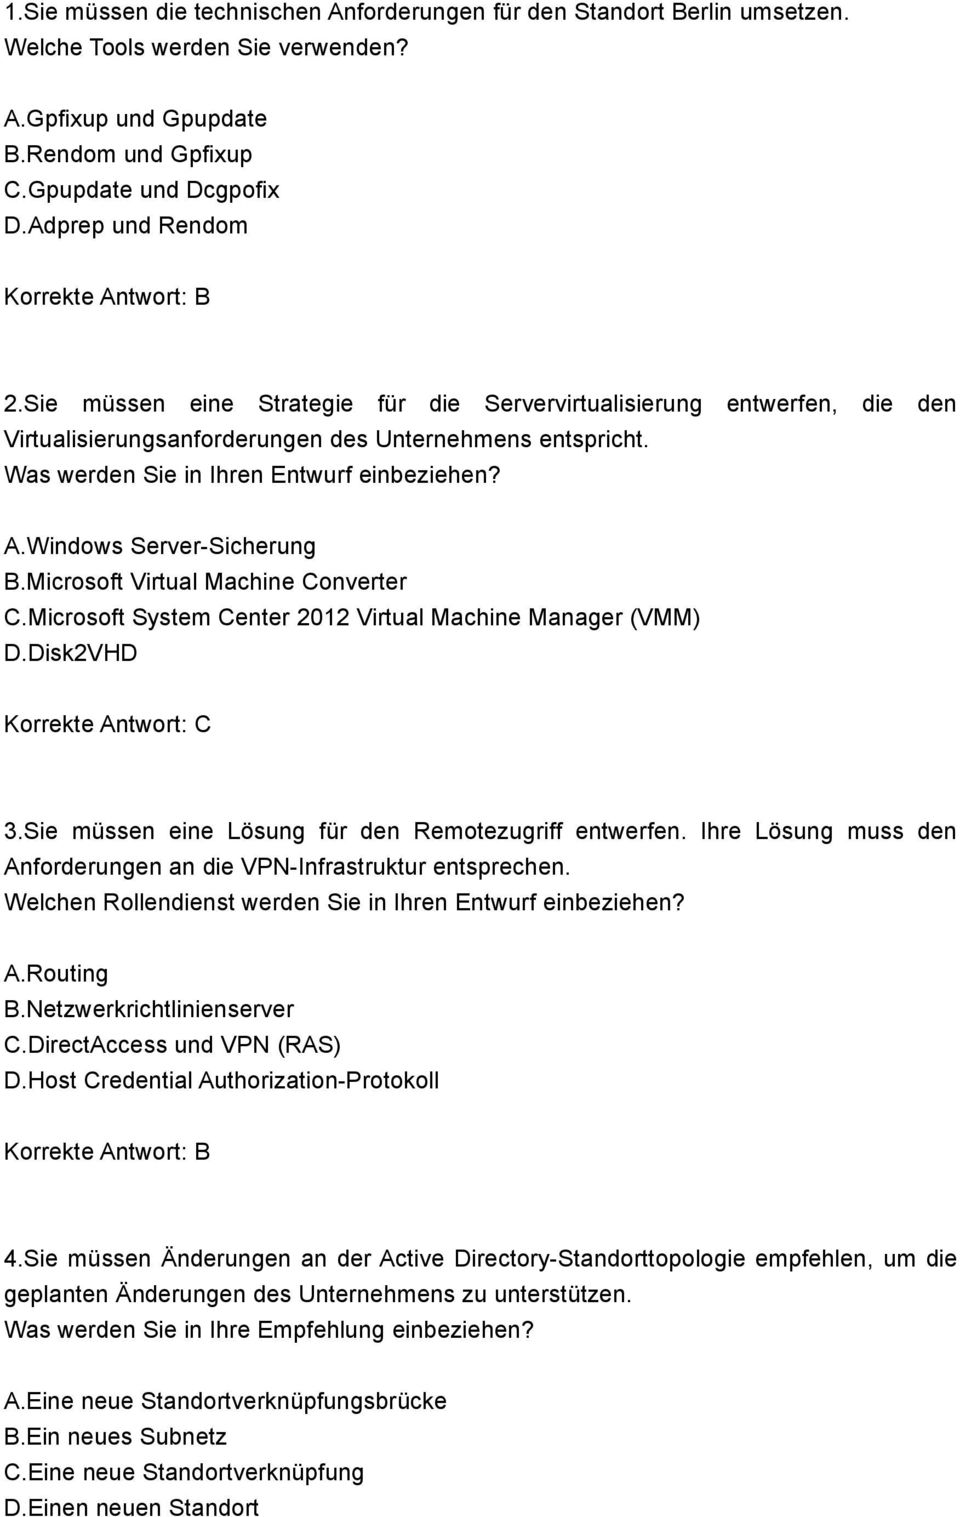 A.Windows Server-Sicherung B.Microsoft Virtual Machine Converter C.Microsoft System Center 2012 Virtual Machine Manager (VMM) D.Disk2VHD 3.Sie müssen eine Lösung für den Remotezugriff entwerfen.